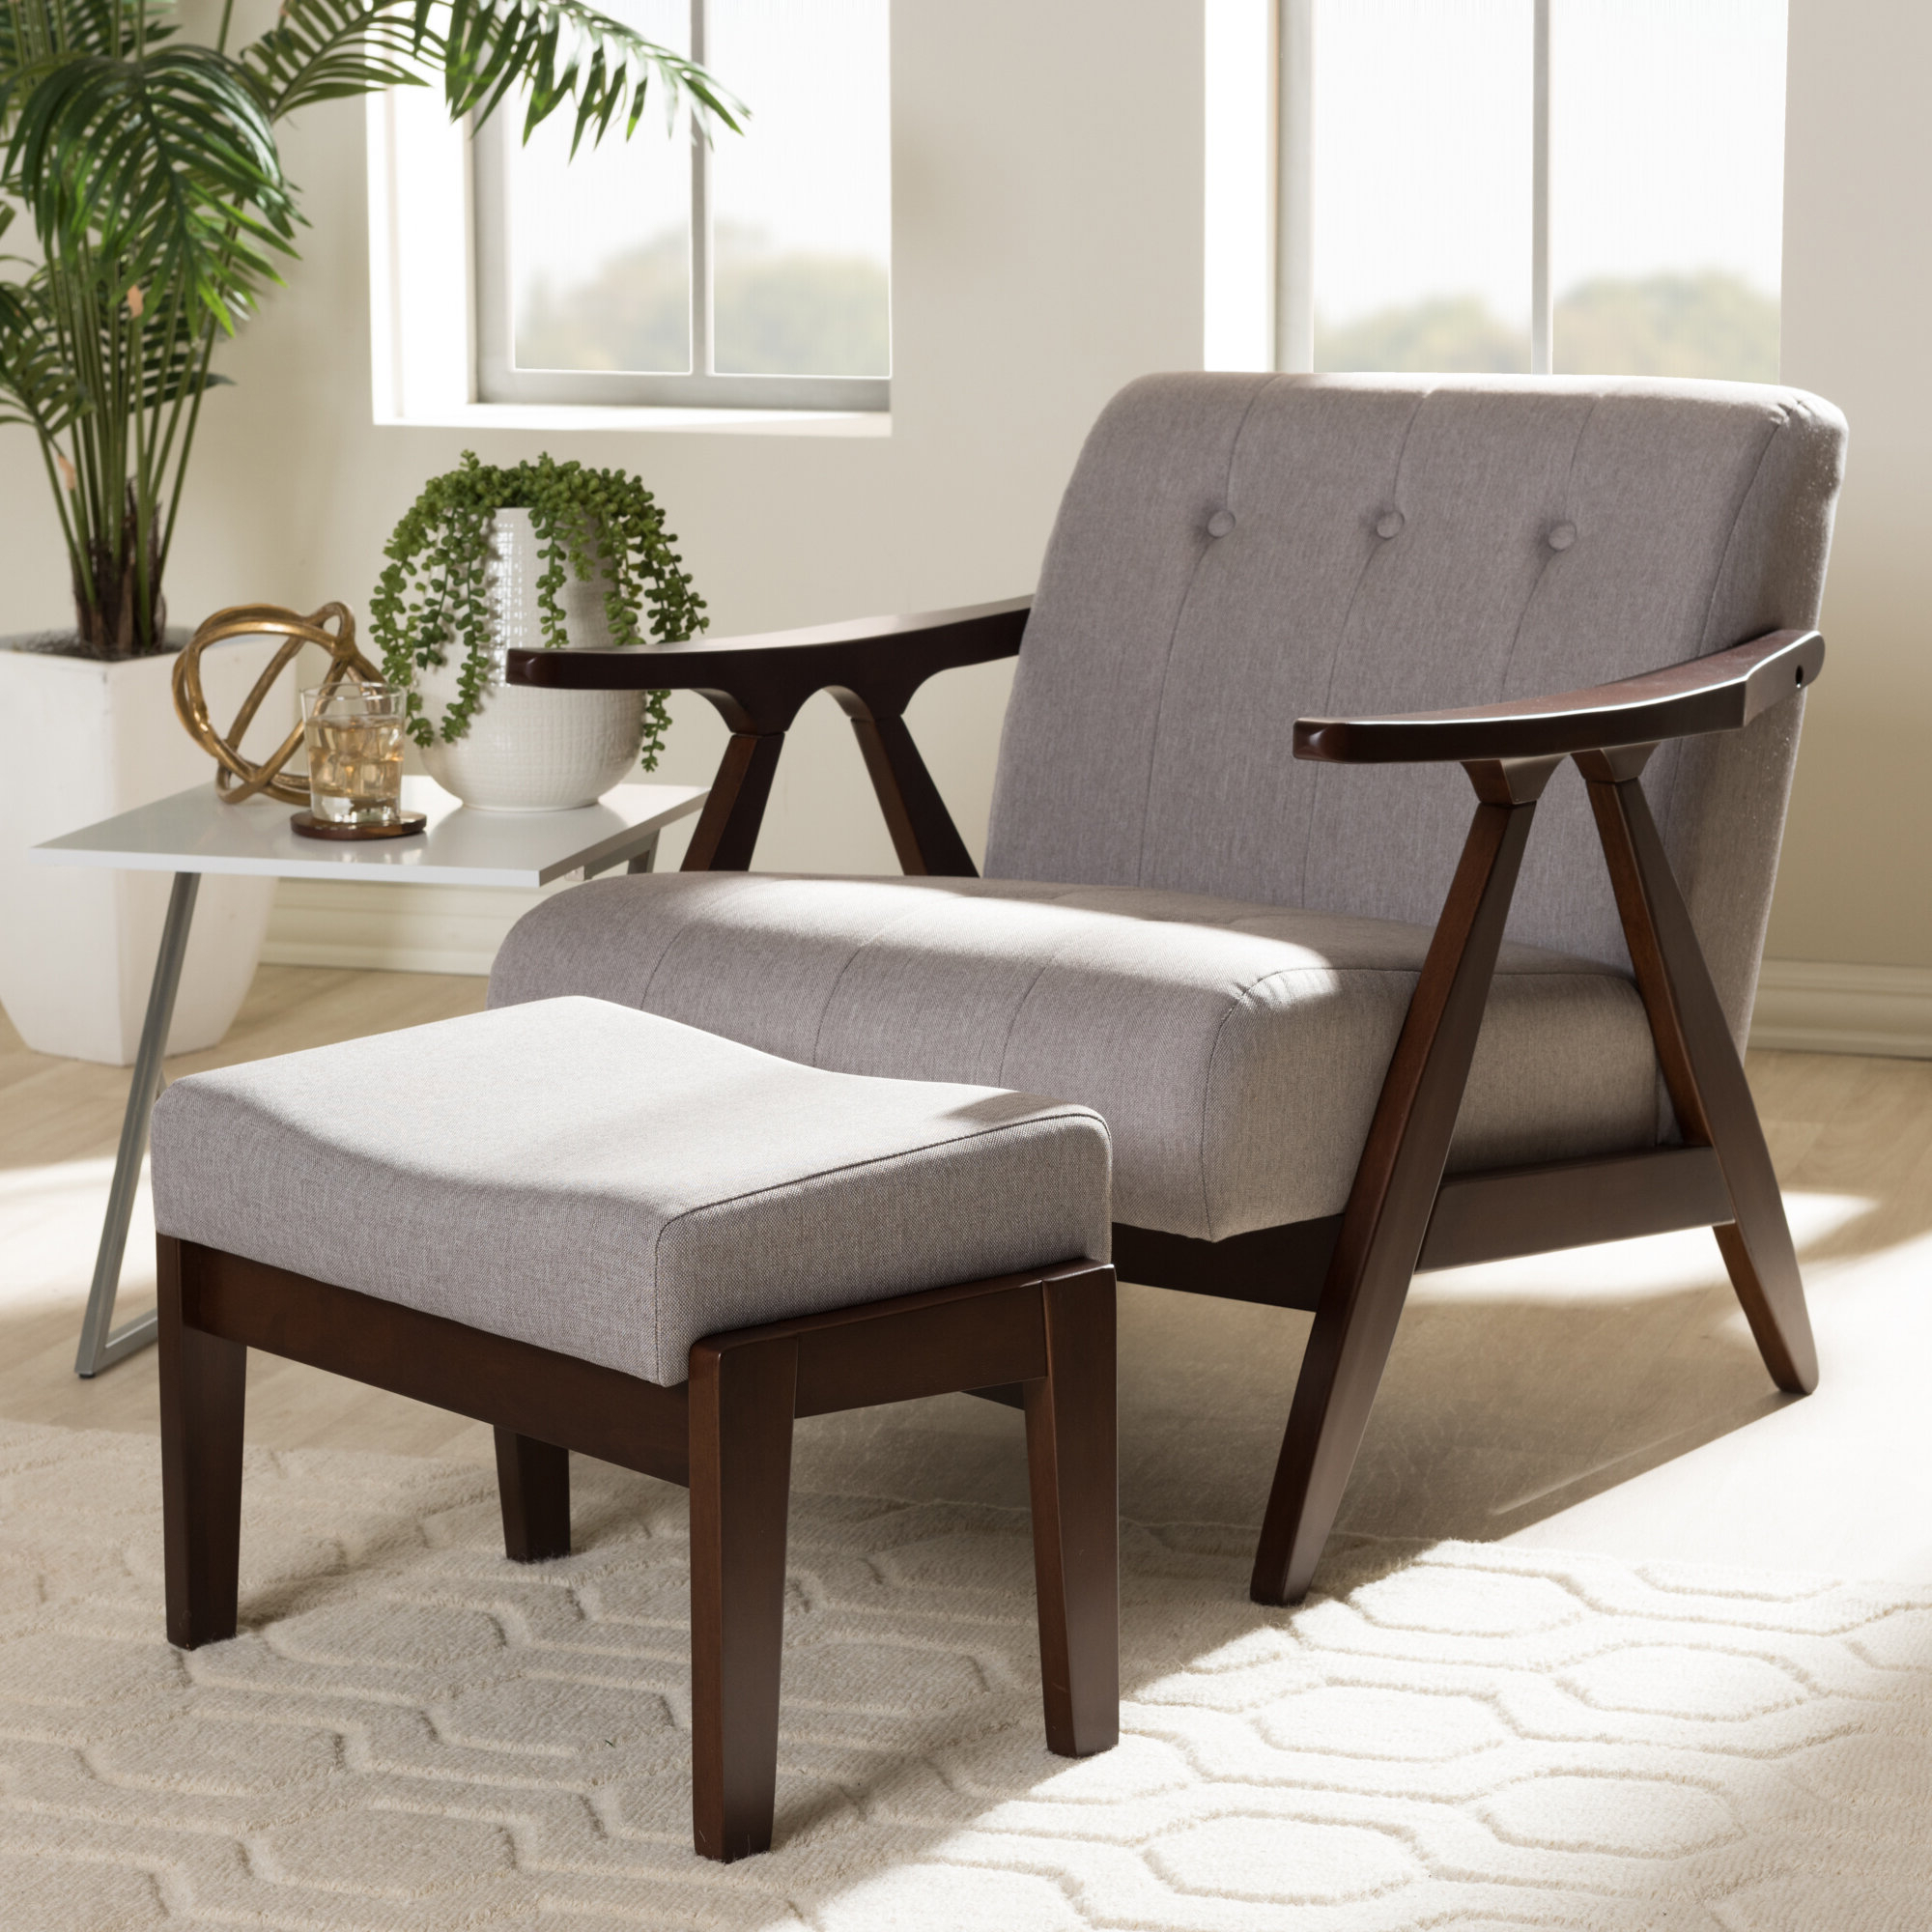 Artemi Barrel Chair And Ottoman Sets Within Most Recent Enrico Lounge Chair And Ottoman (View 8 of 20)